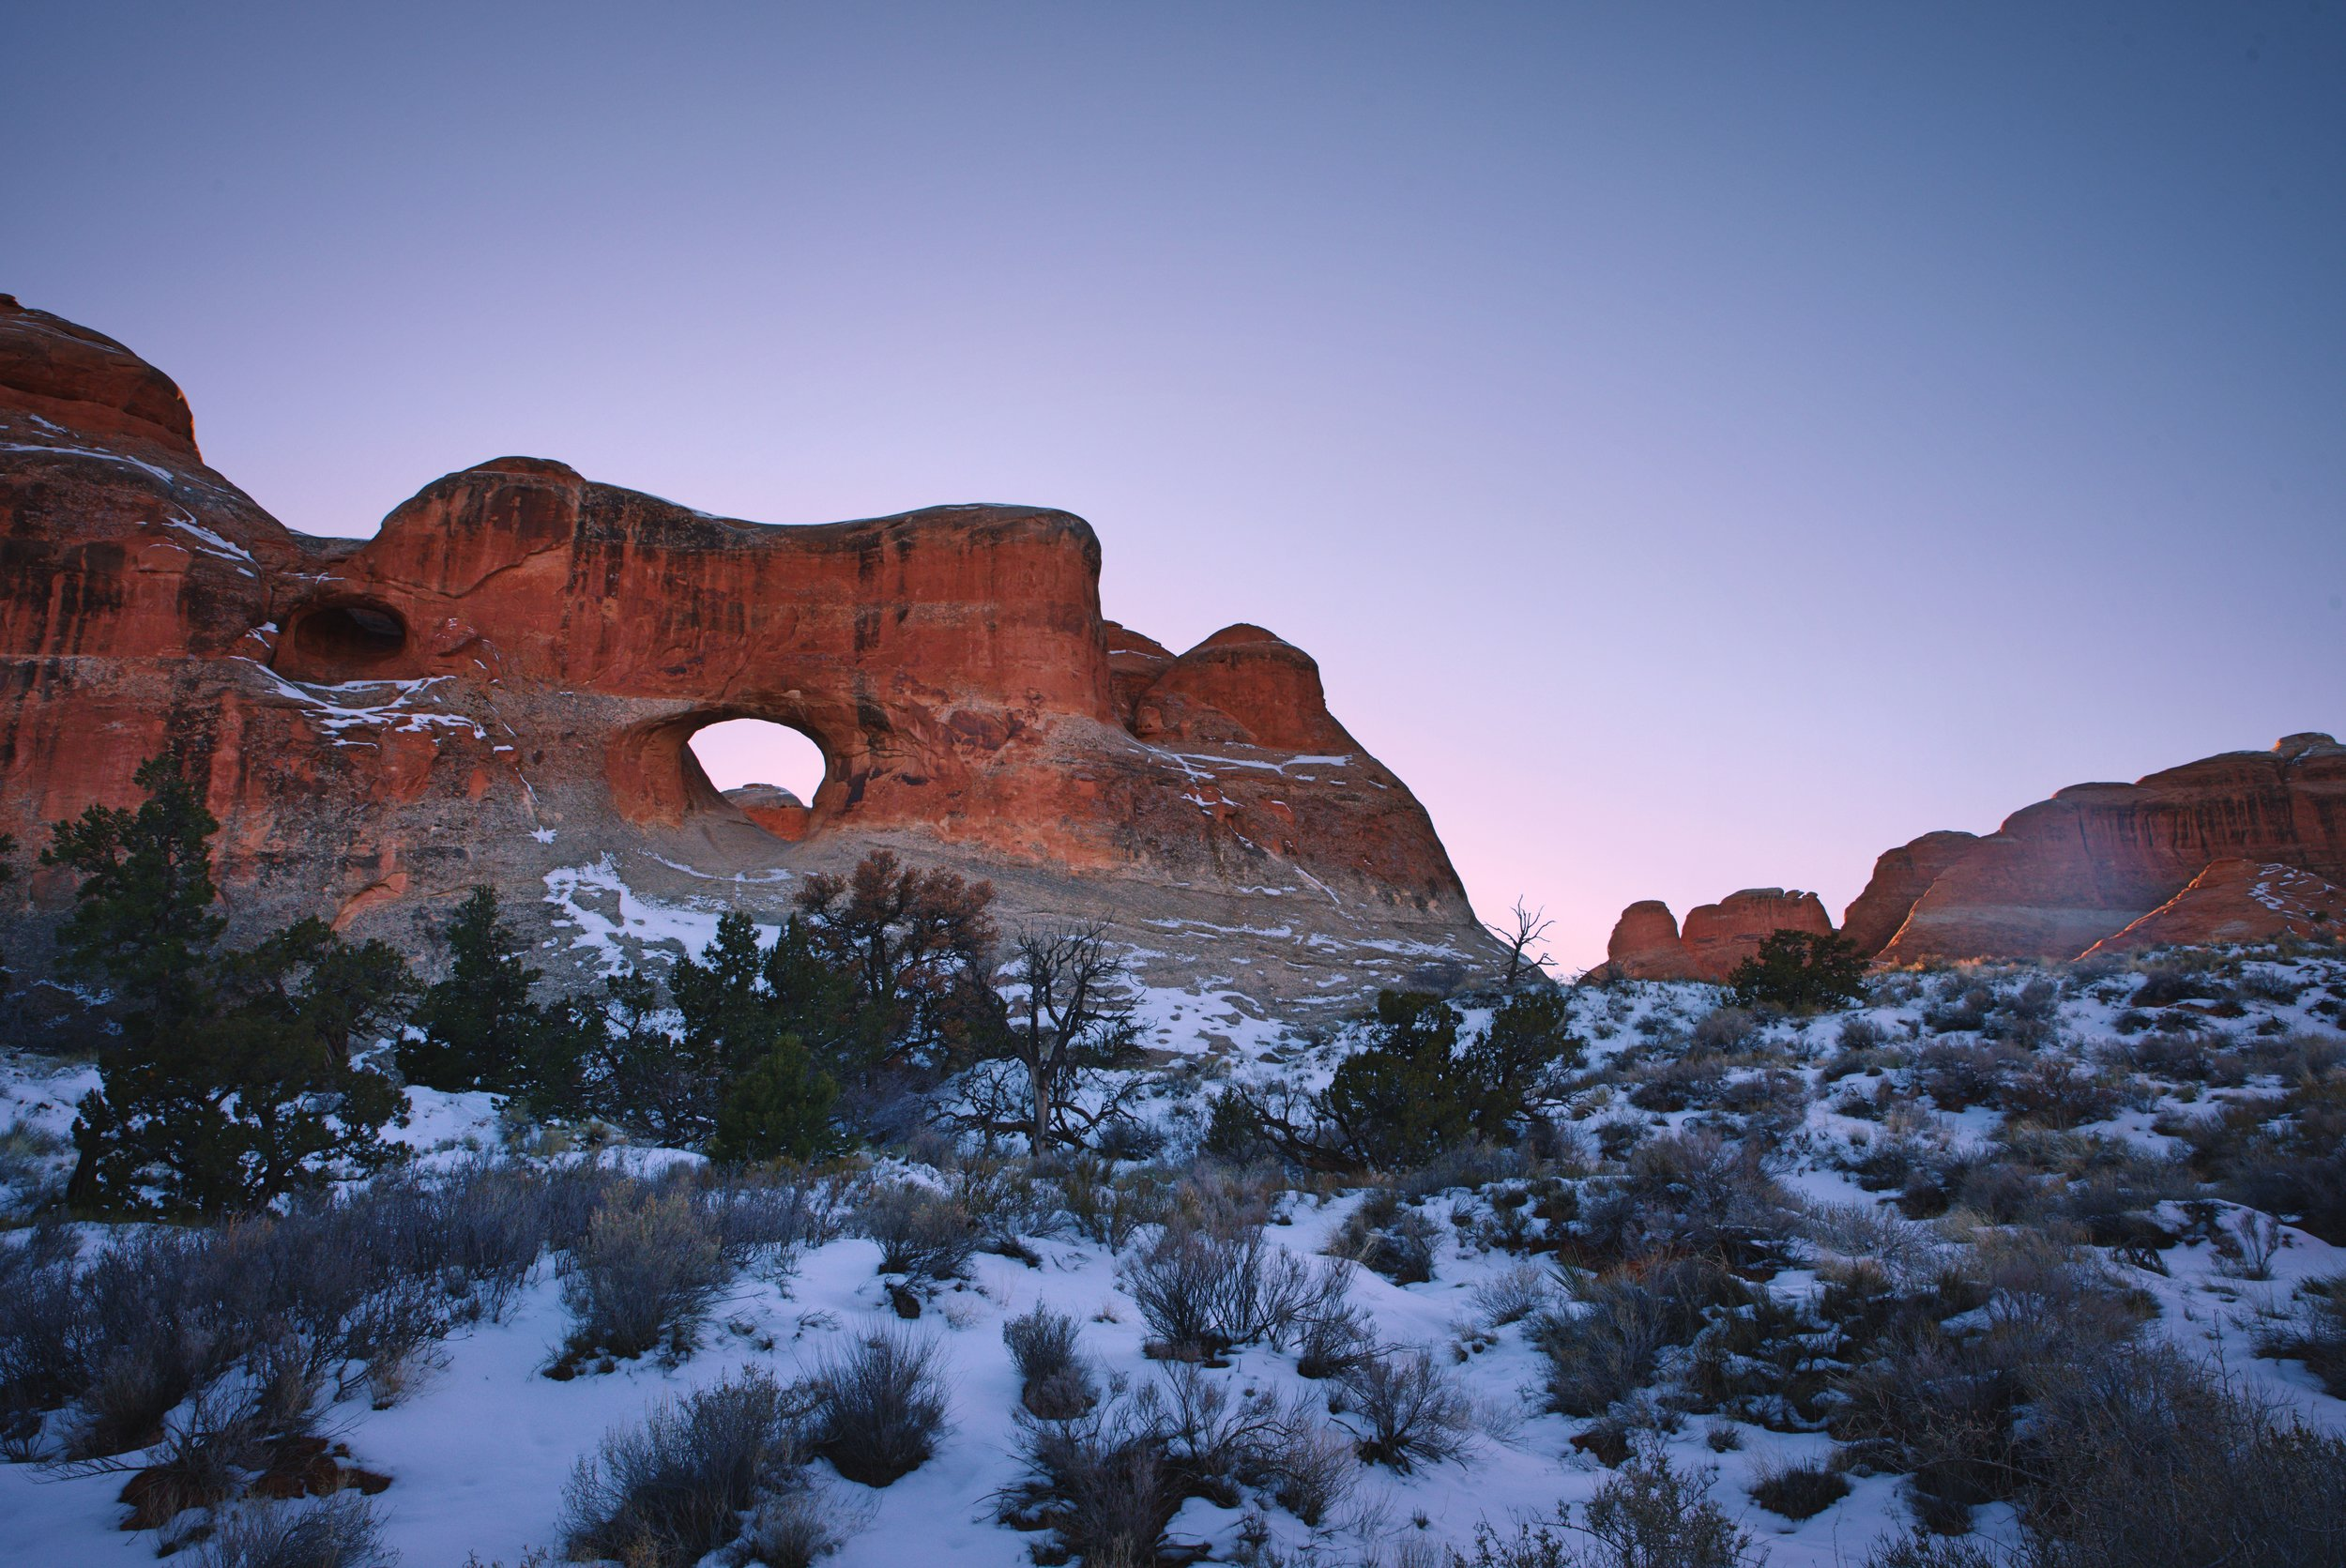 Tunnel Arch at dusk in Arches National Park